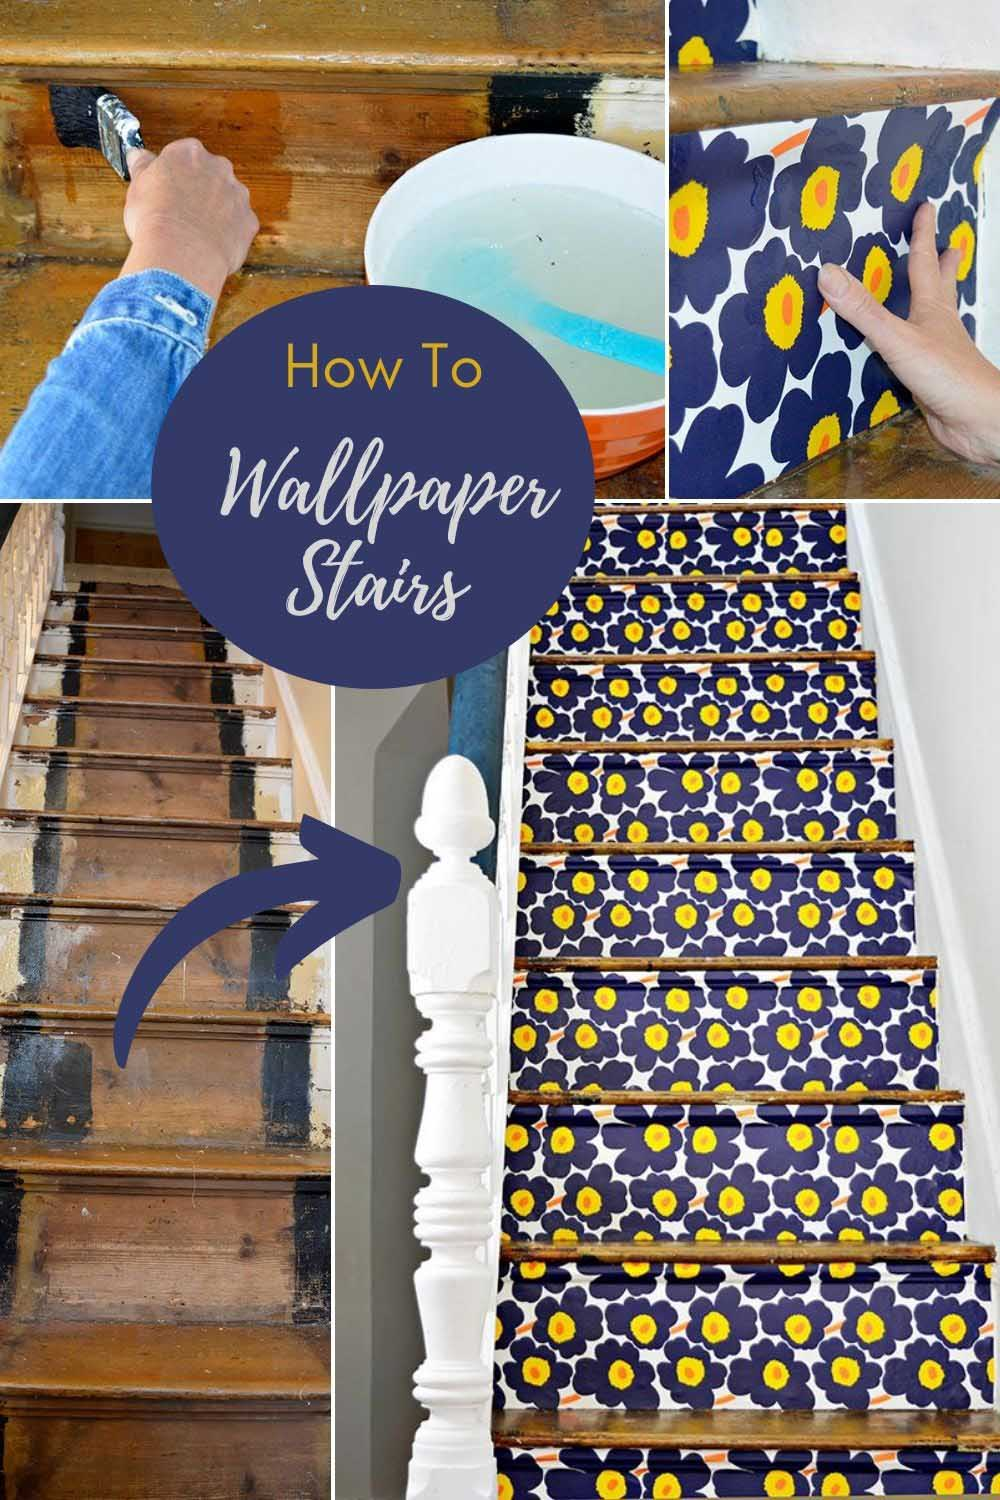 Marimekko wallpapered stairs